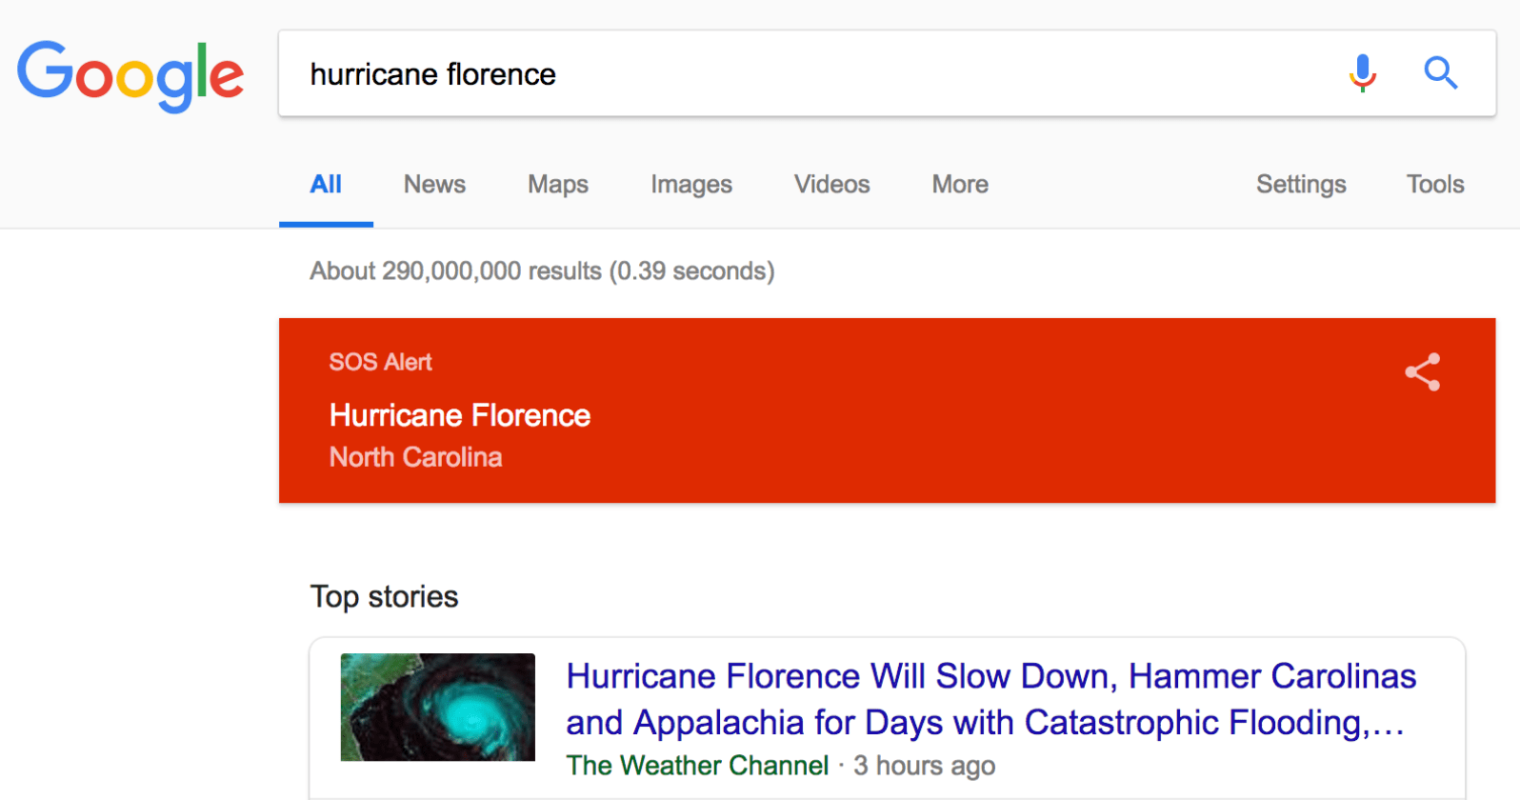 Google Search Activates SOS Alert for Hurricane Florence